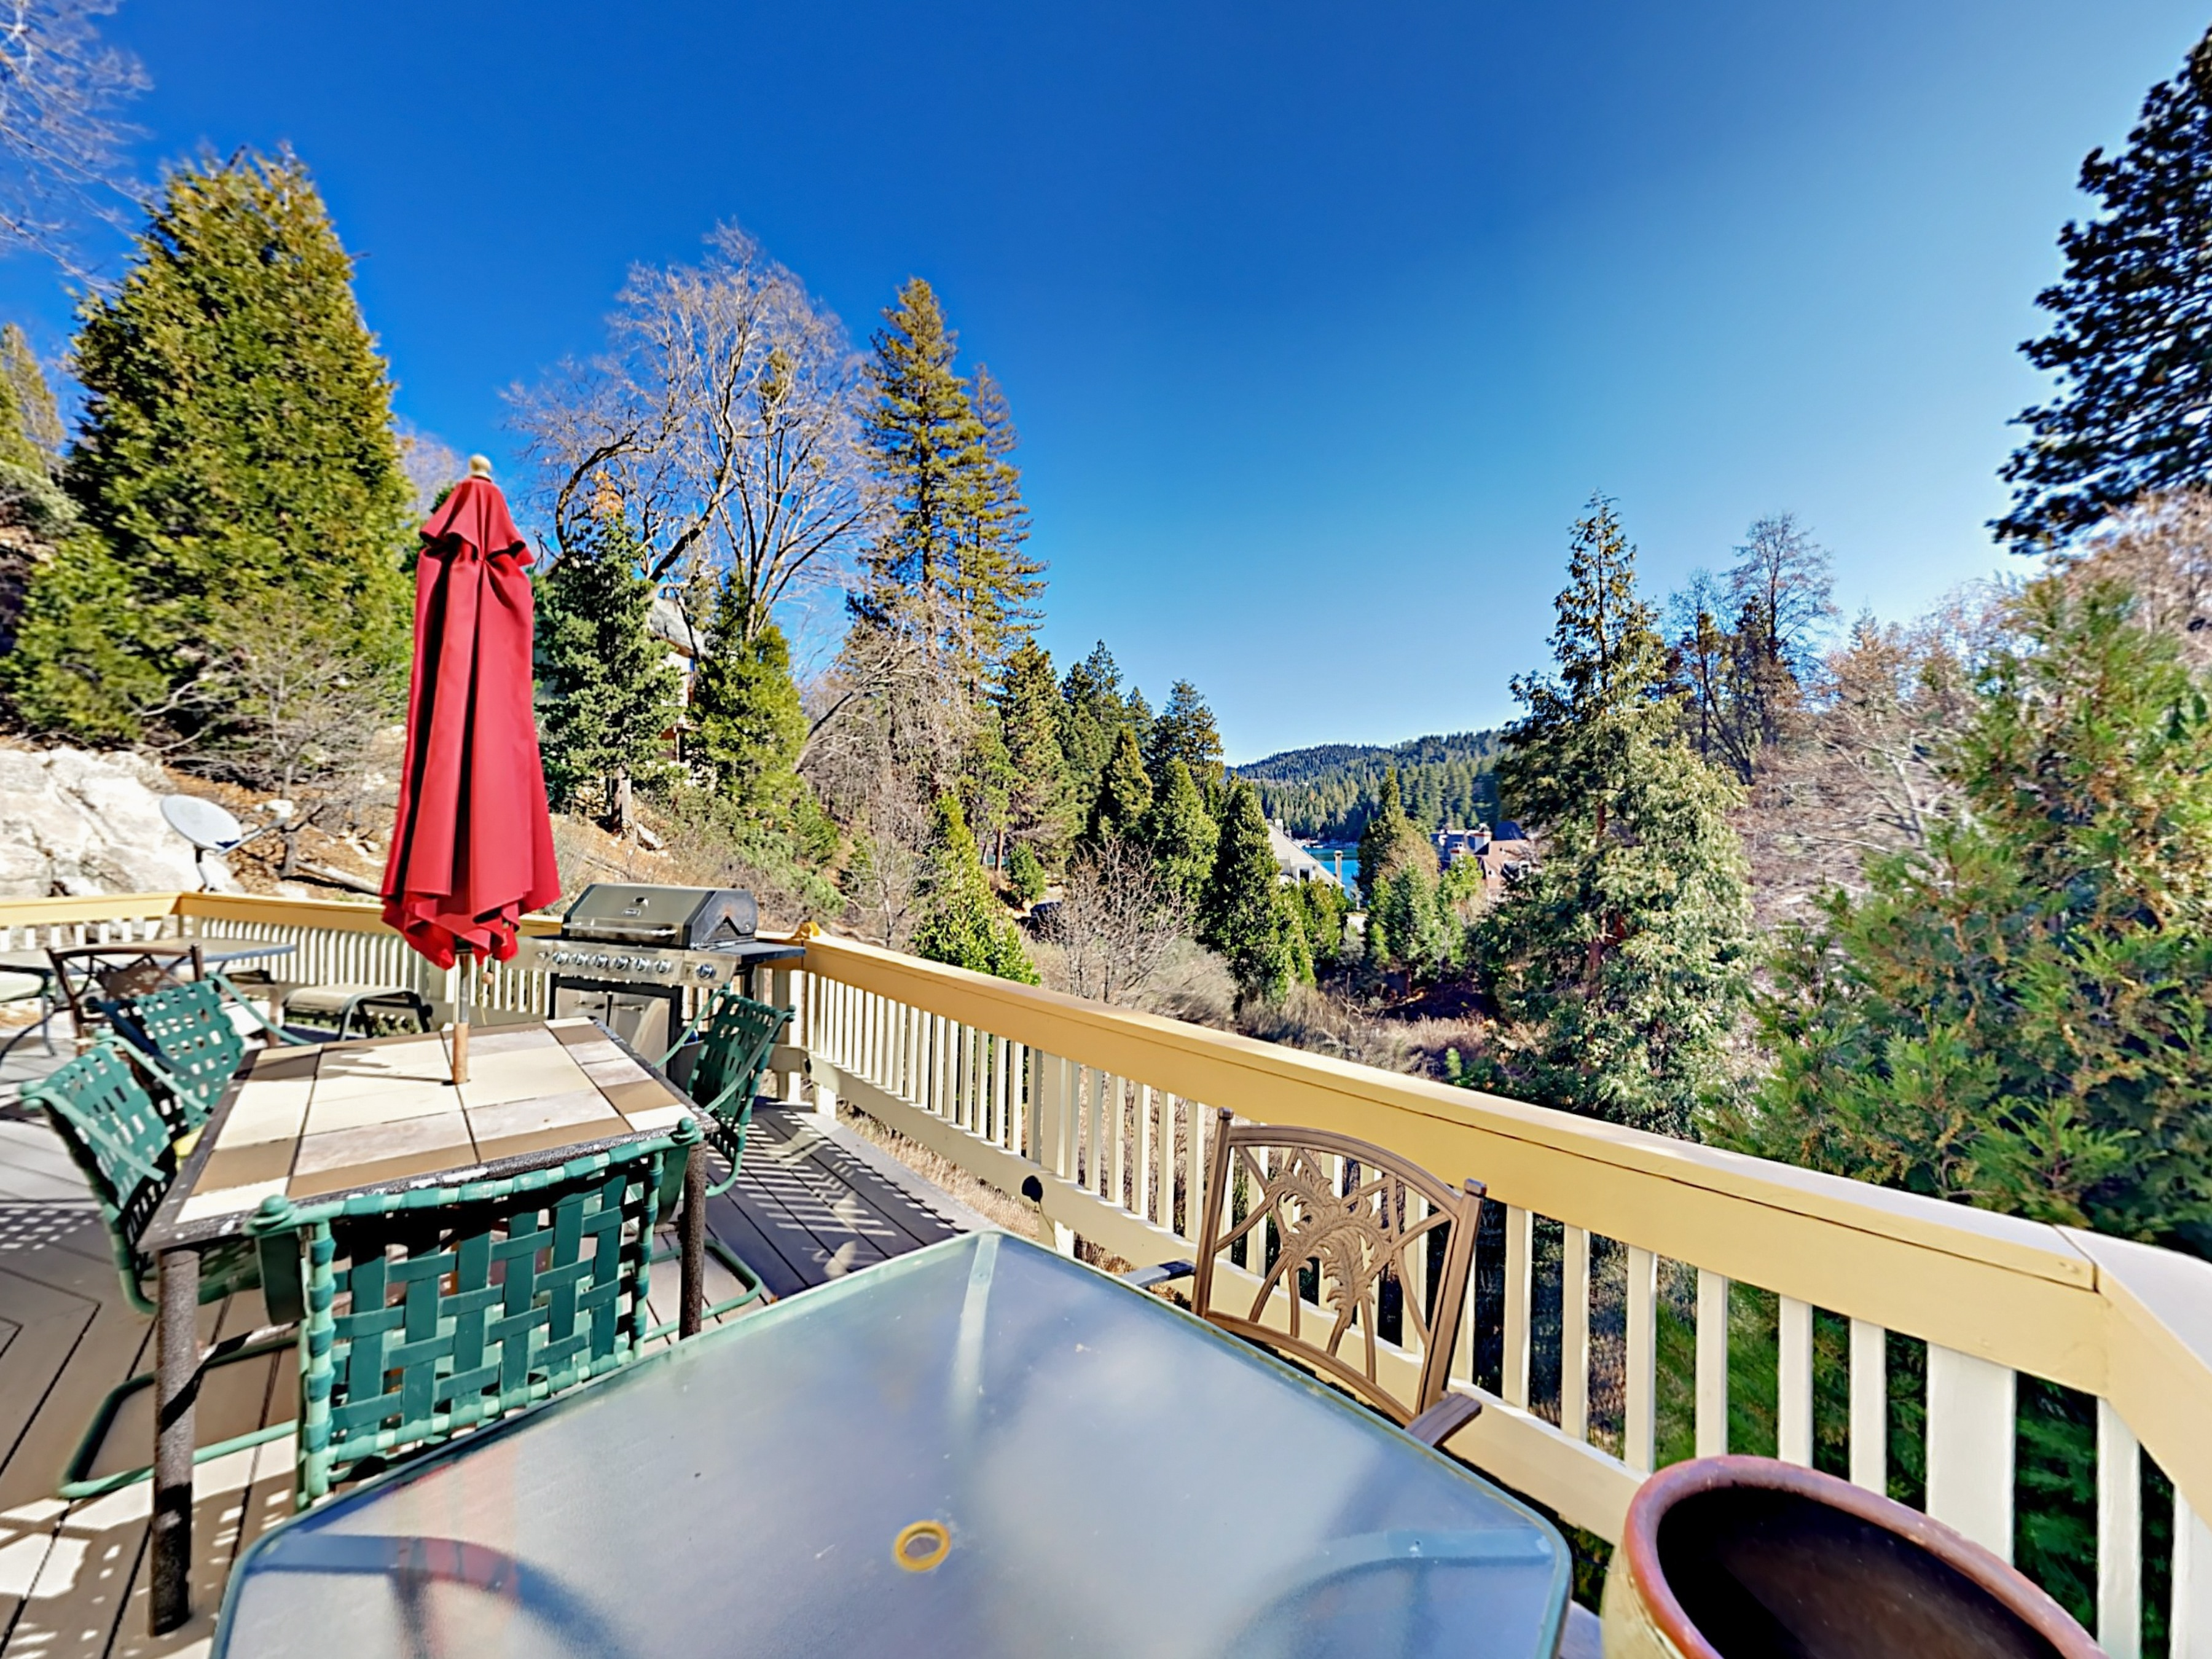 Welcome to Lake Arrowhead! Upper deck with 3 patio tables, BBQ, and lake views. This property is maintained and managed by TurnKey Vacation Rentals.